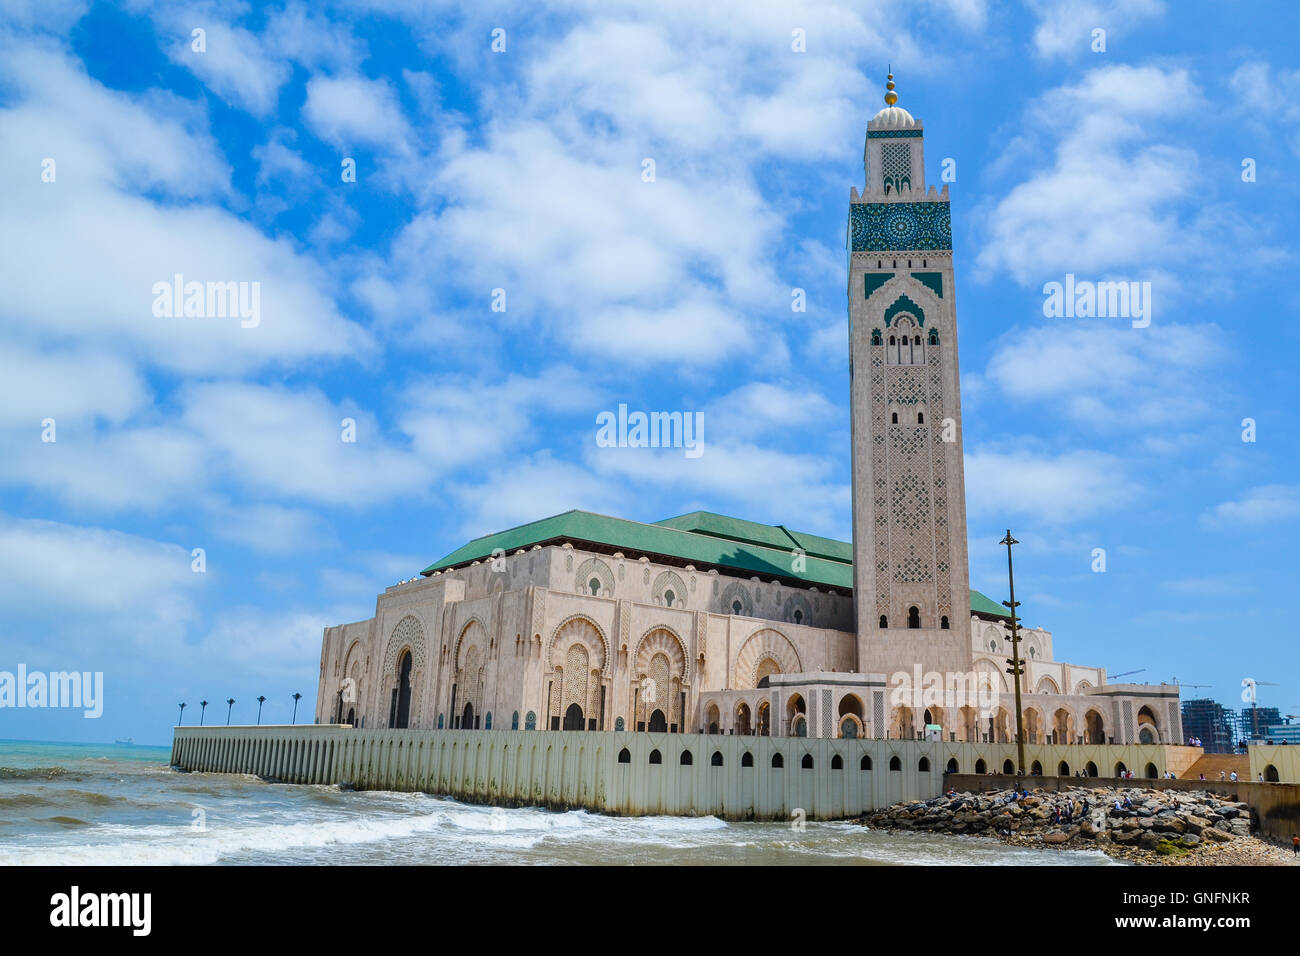 The Hassan II Mosque in Casablanca, Morocco - Stock Image